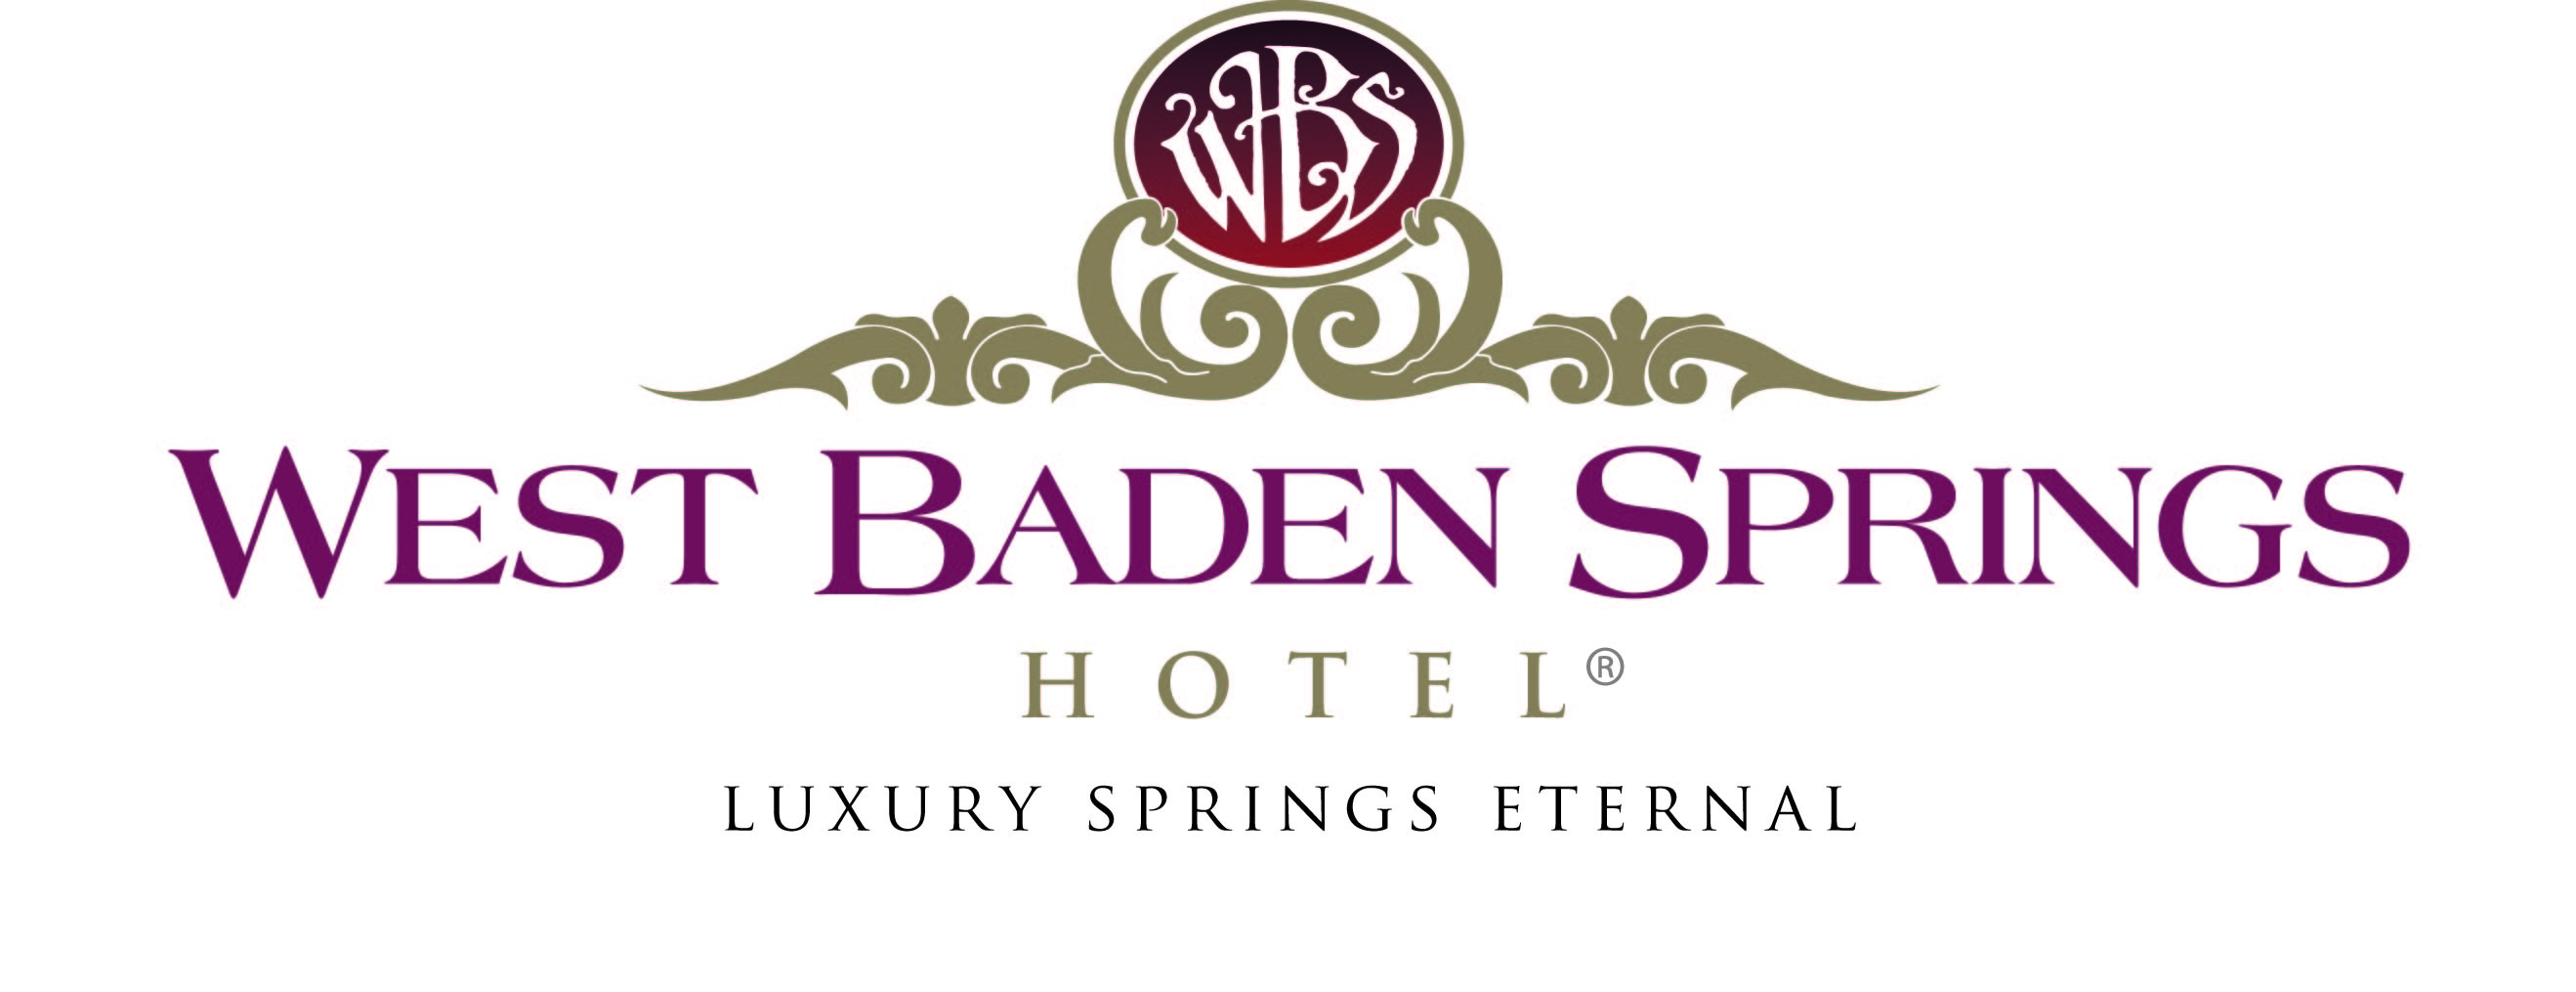 """West Baden Springs Hotel >> """"So Cold the River Author"""" to Make Special Appearance at West Baden Springs Hotel"""